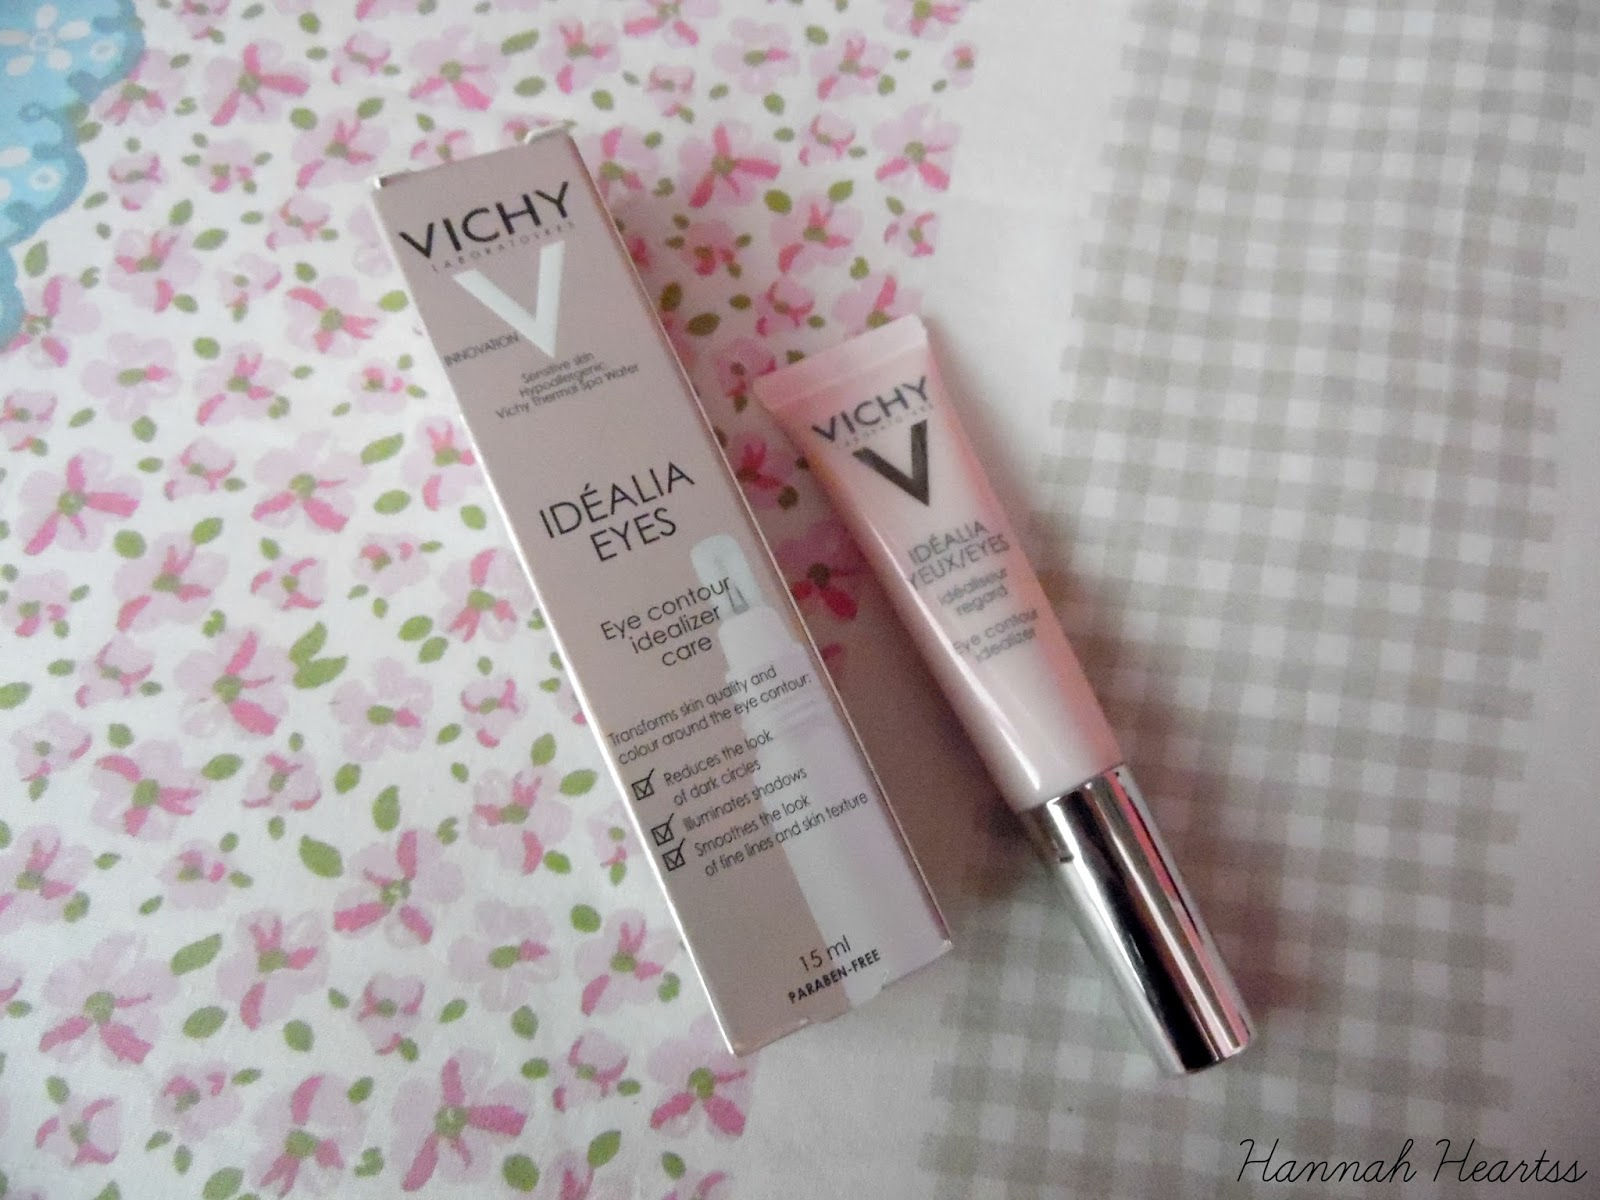 Vichy Idealia Eyes Review